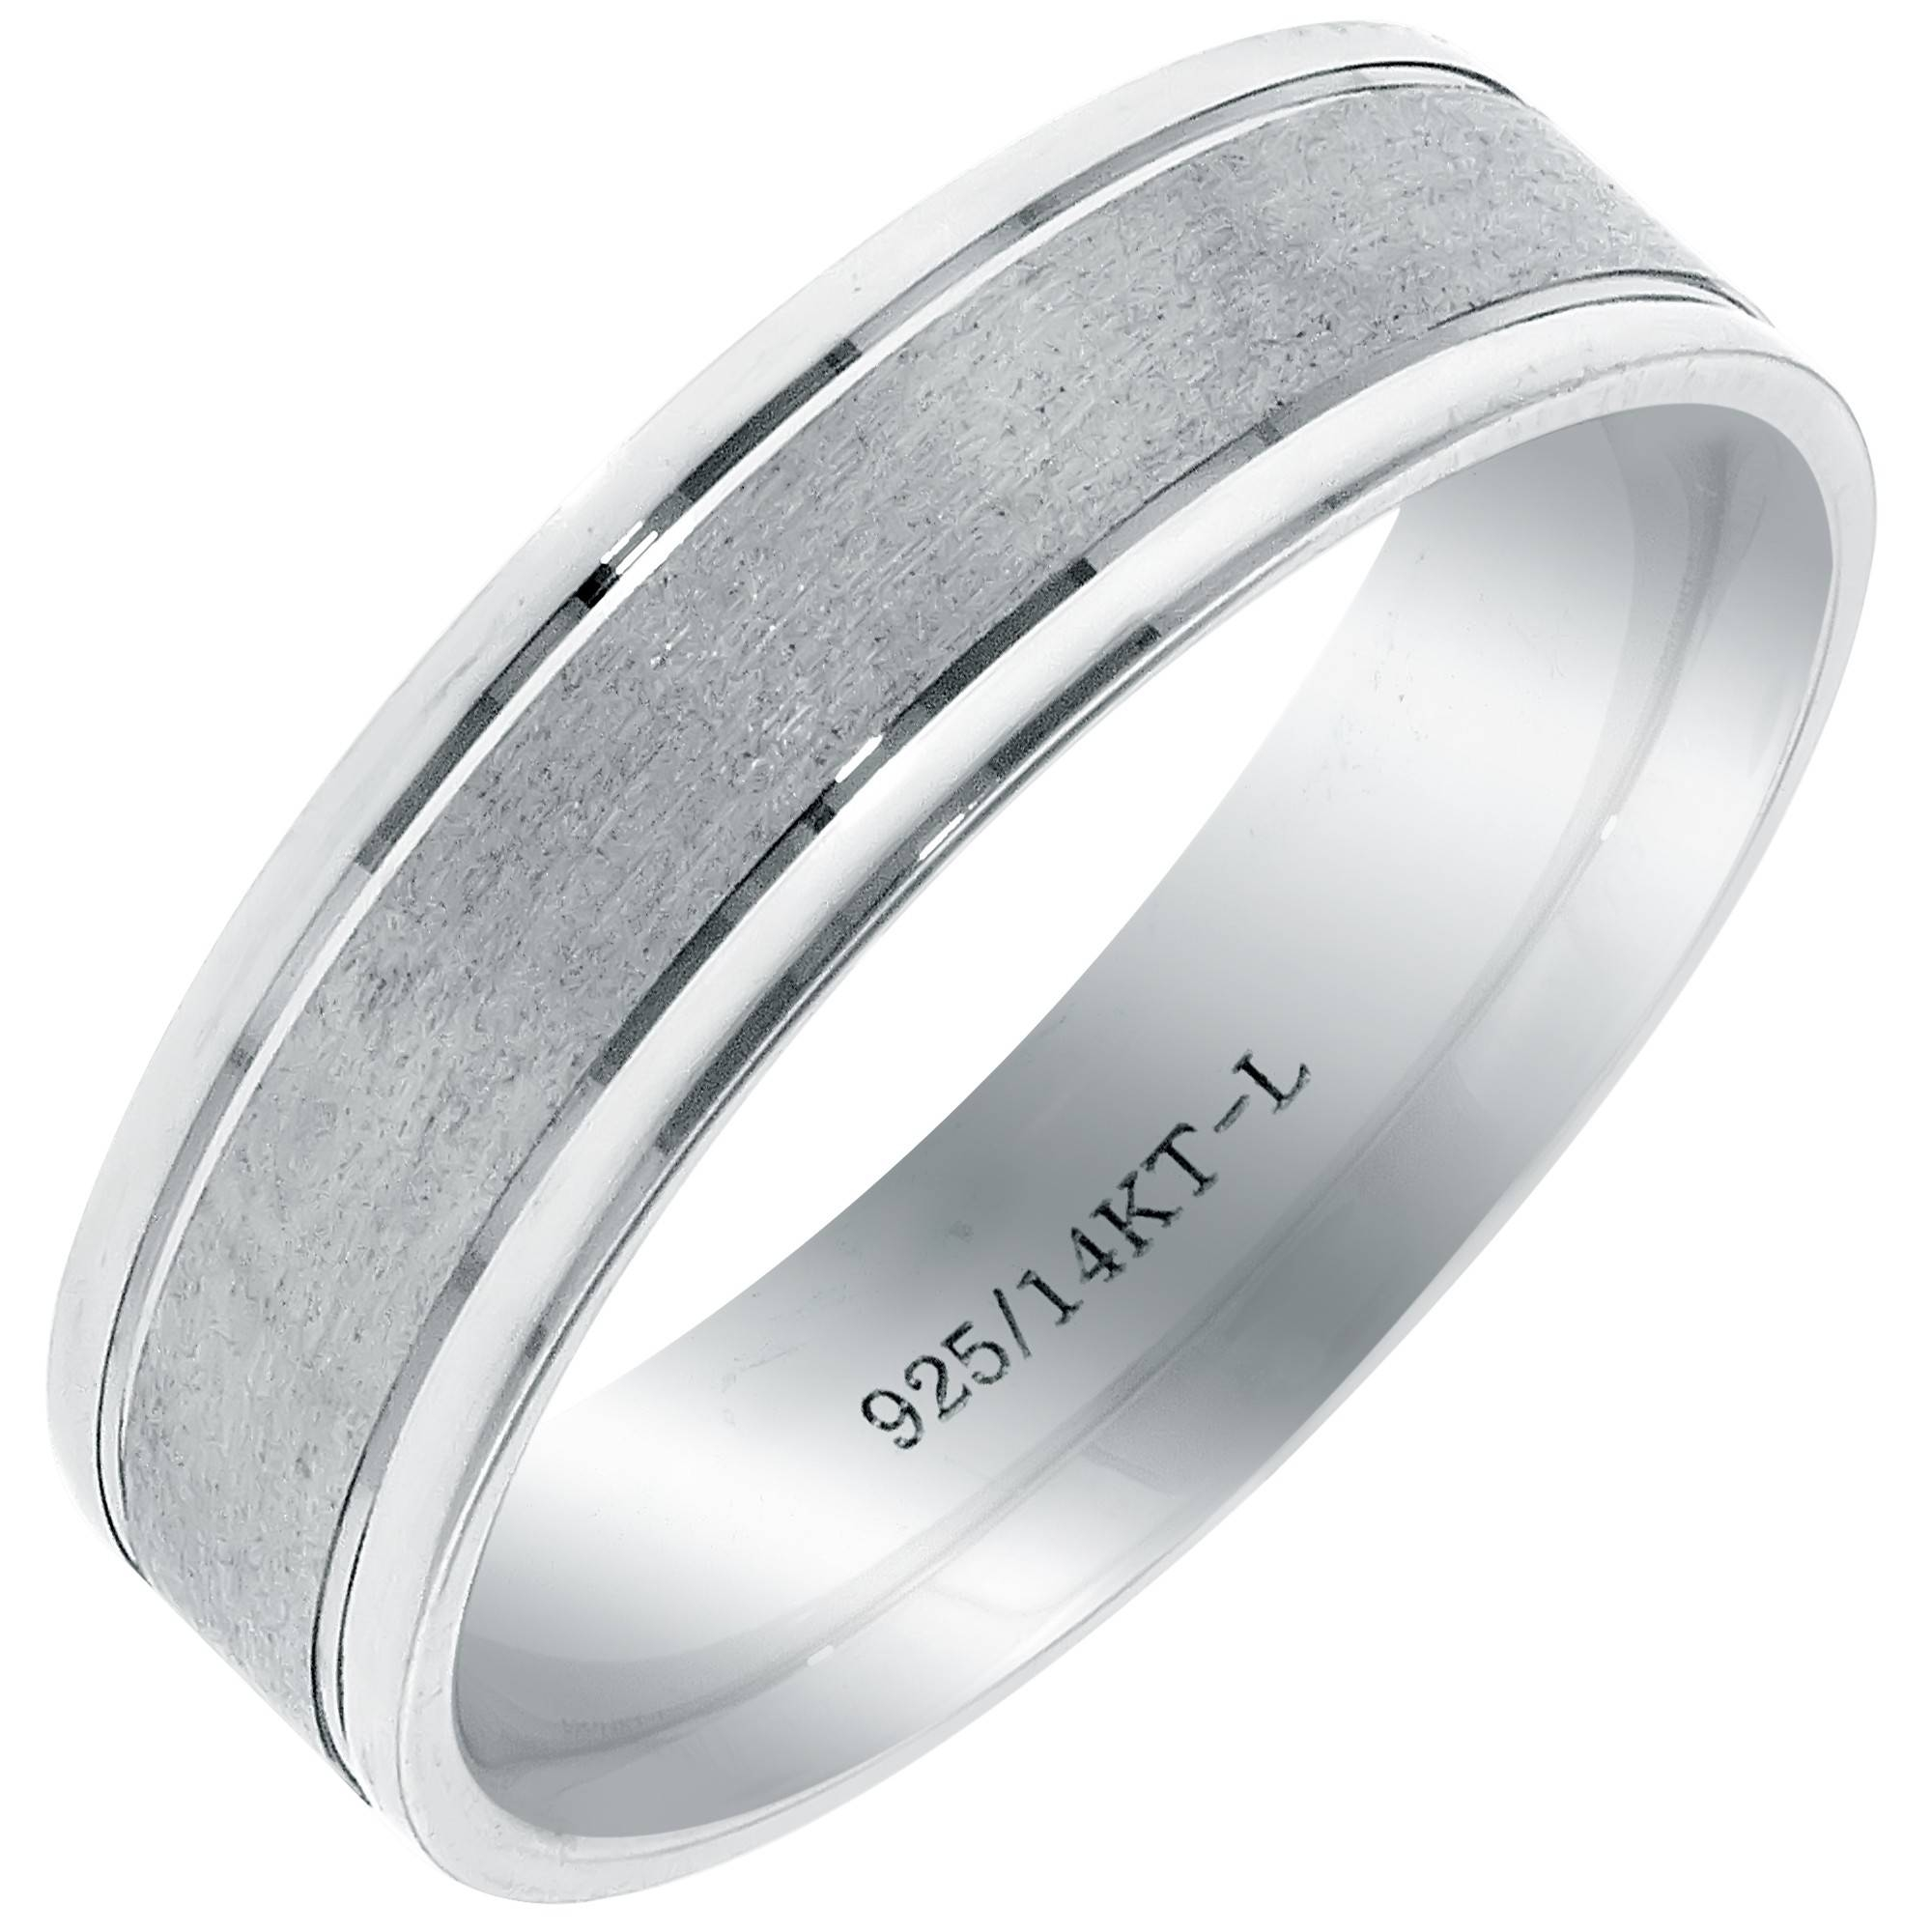 Bond2 Mens Wedding Band In 14kt White Gold And Sterling Silver (6mm) Regarding Silver Mens Wedding Rings (View 11 of 15)